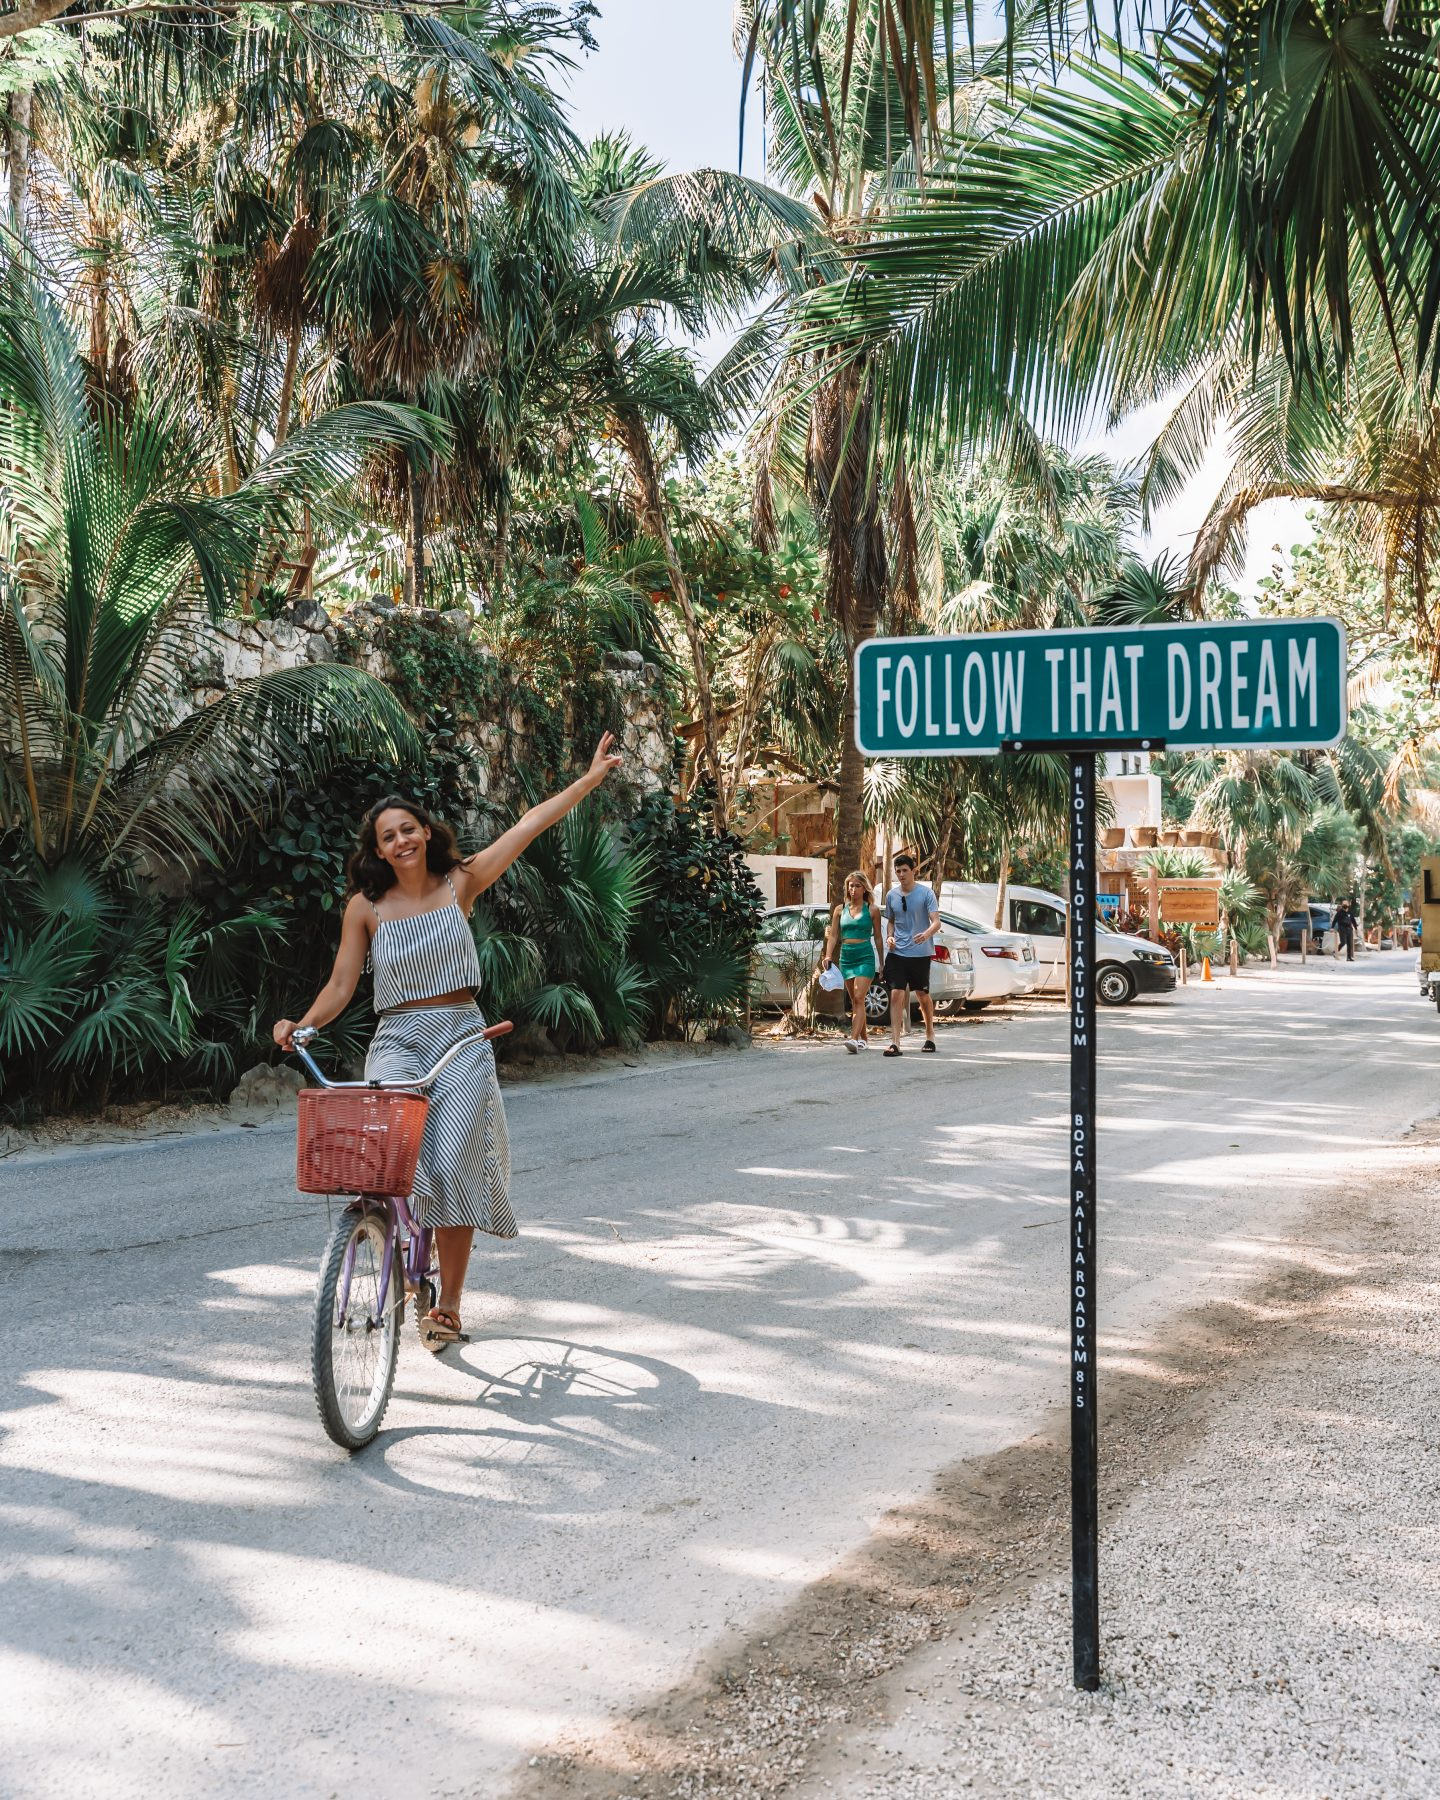 girl on a bike in front of the follow that dream sign